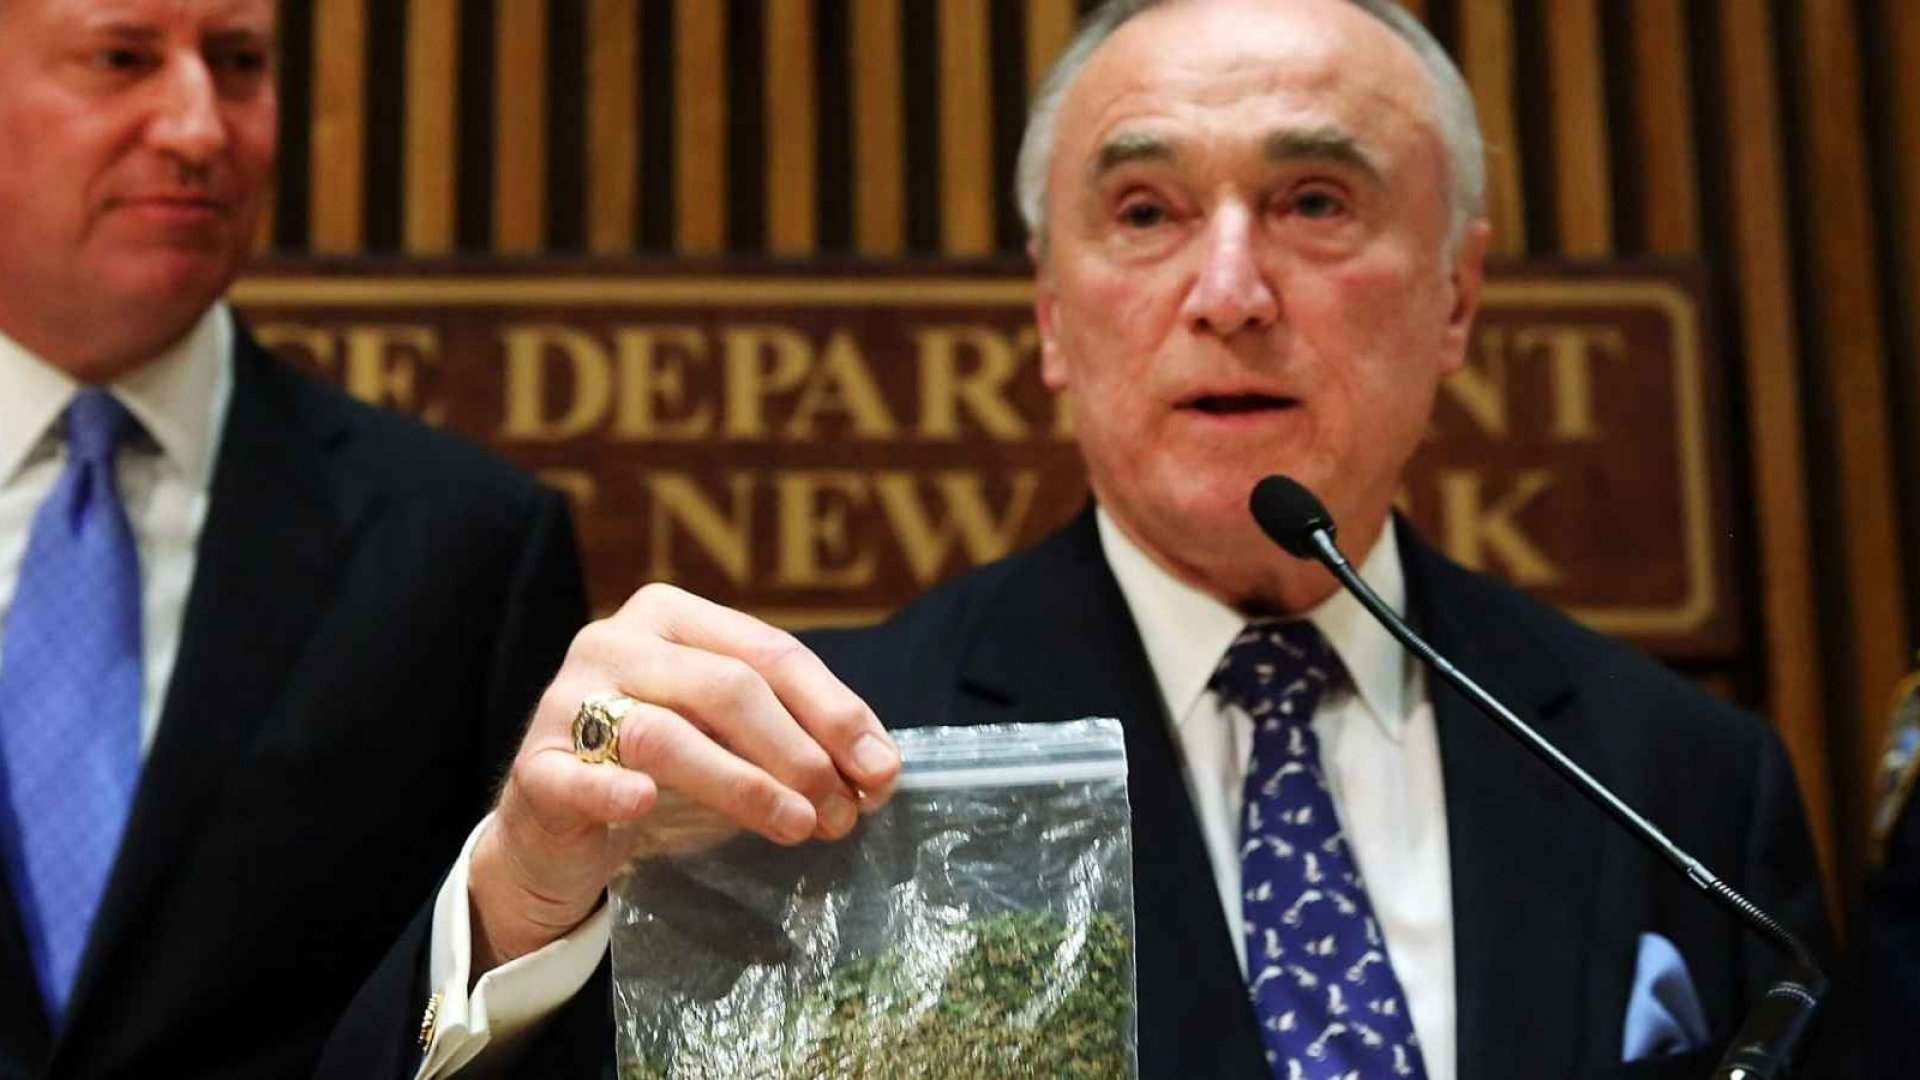 In 2014, New York City Police Commissioner Bill Bratton announced that the NYPD would start to issue tickets for marijuana possession of up to 25 grams. Even though marijuana laws are being reformed, half a million people were arrested for possession across the country last year.